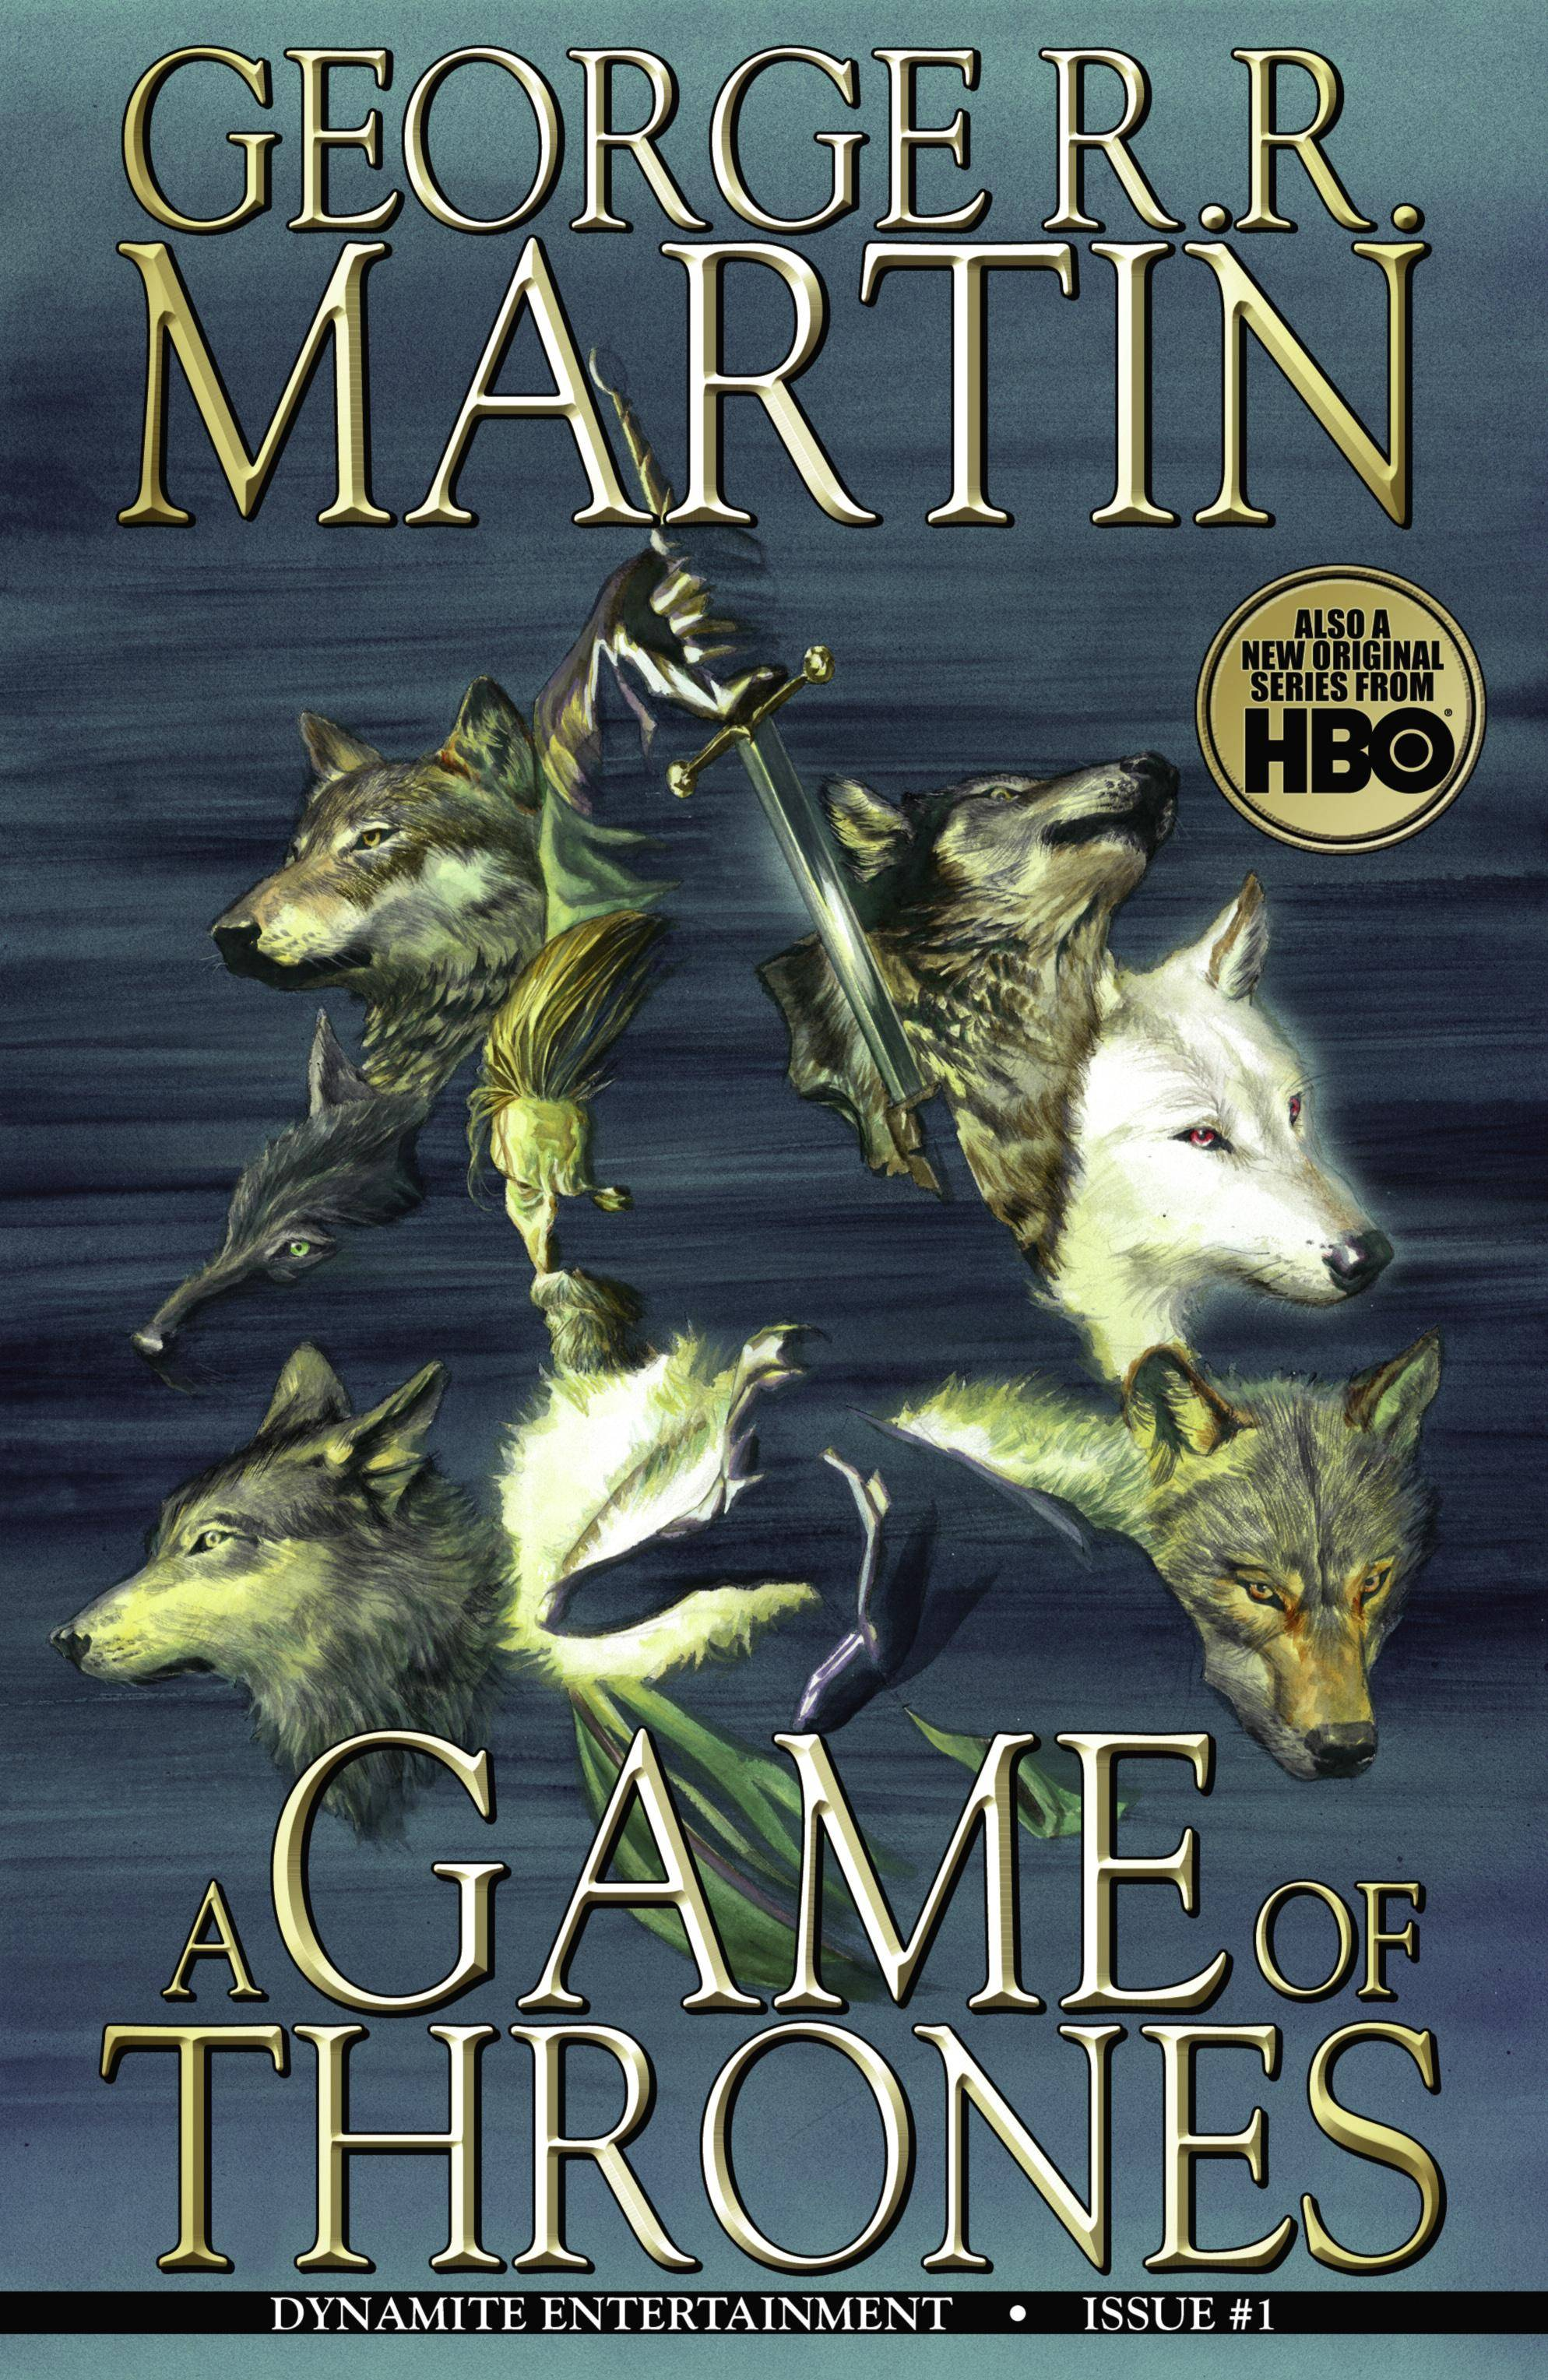 George R R Martins A Game of Thrones 001 2011 2 covers Digital